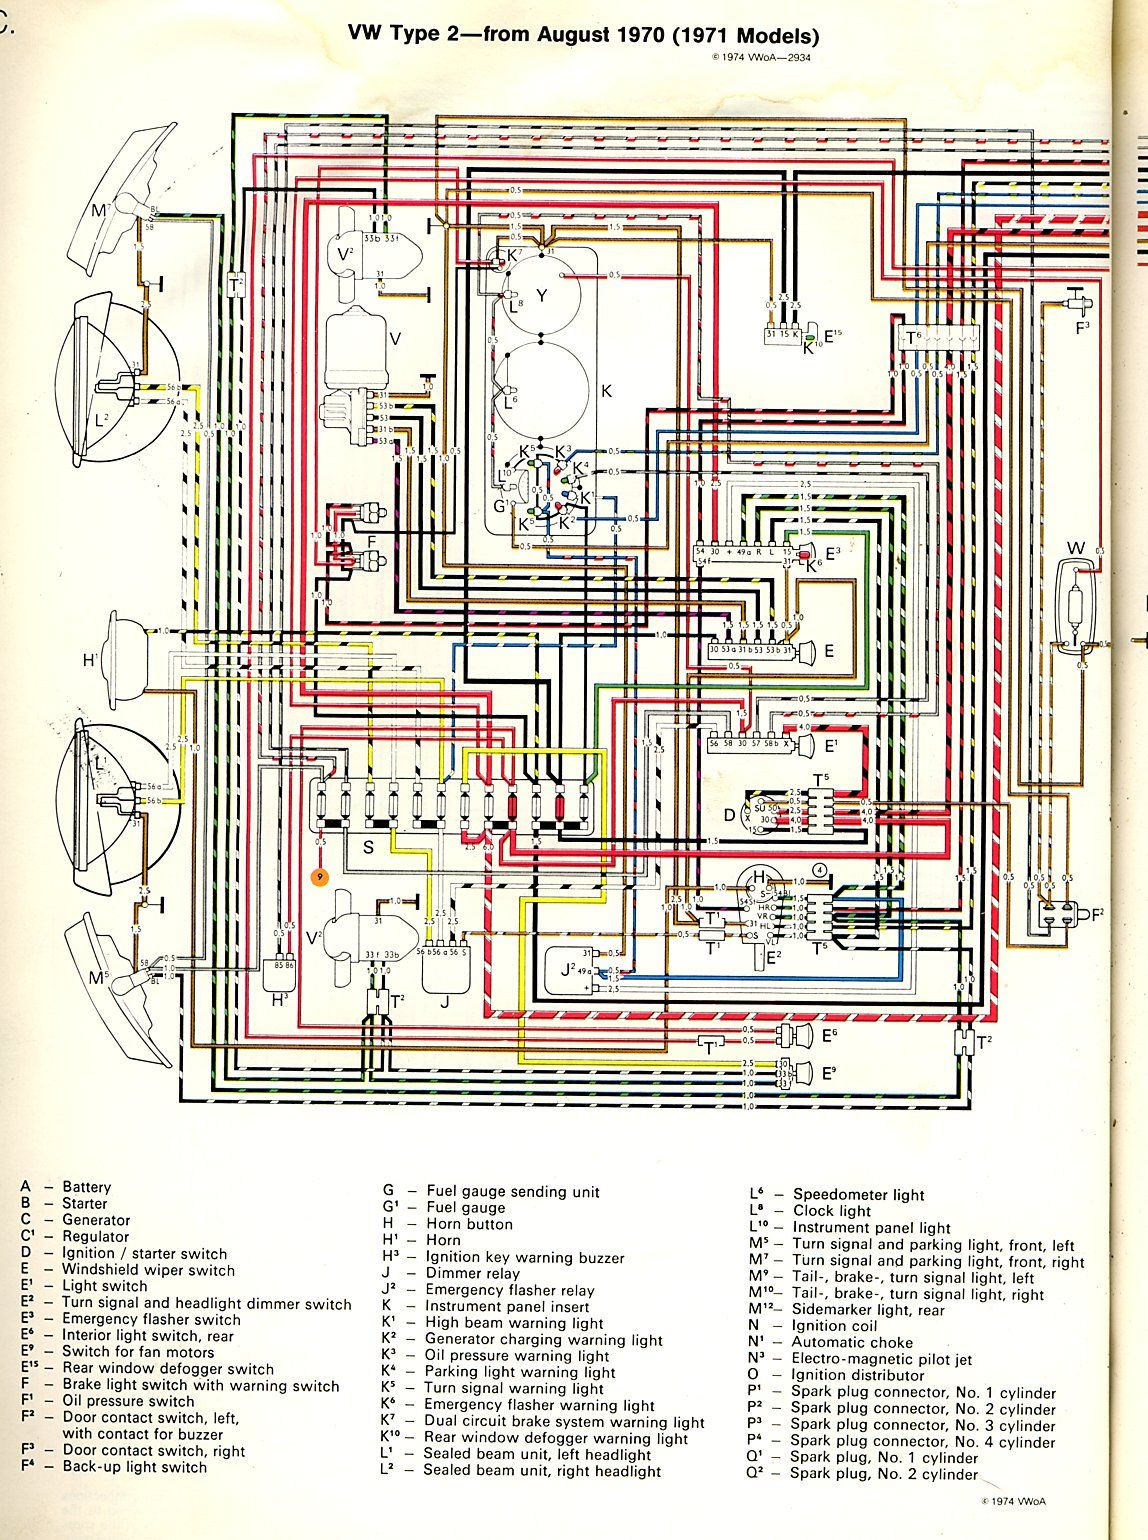 wire diagram 1971 wiring diagram1971 bus wiring diagram thegoldenbug com stuff to try vw bus1971 bus wiring diagram thegoldenbug com